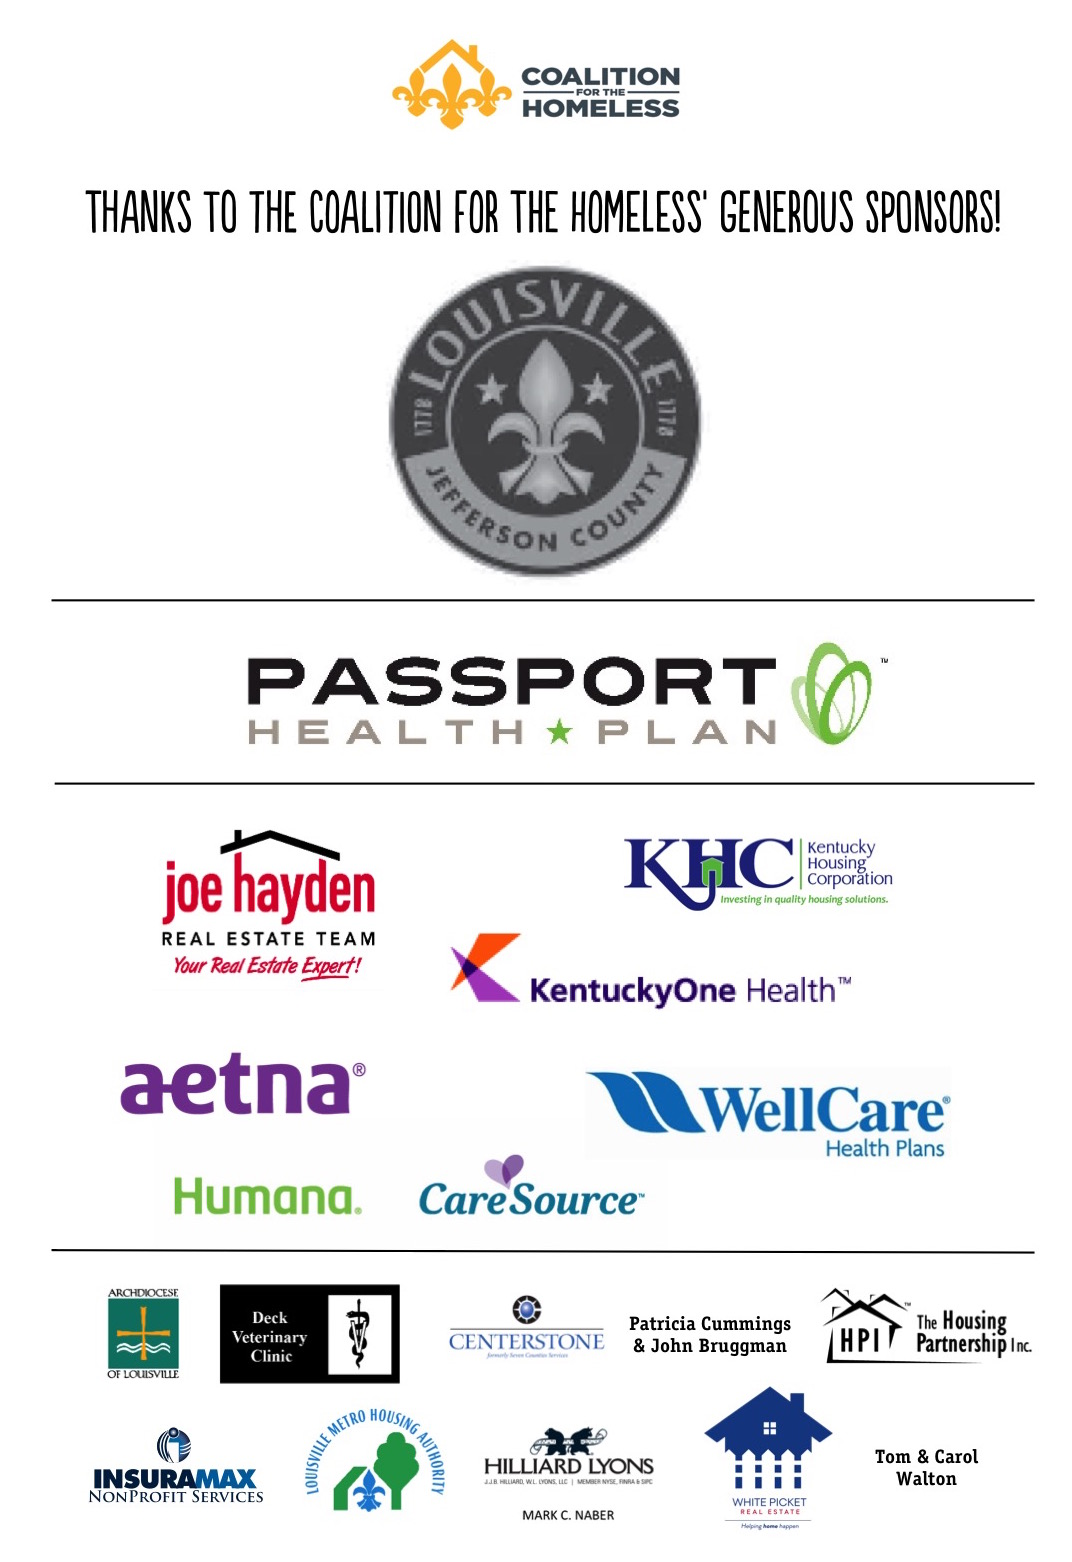 Coalition for the Homeless 2016-17 sponsors